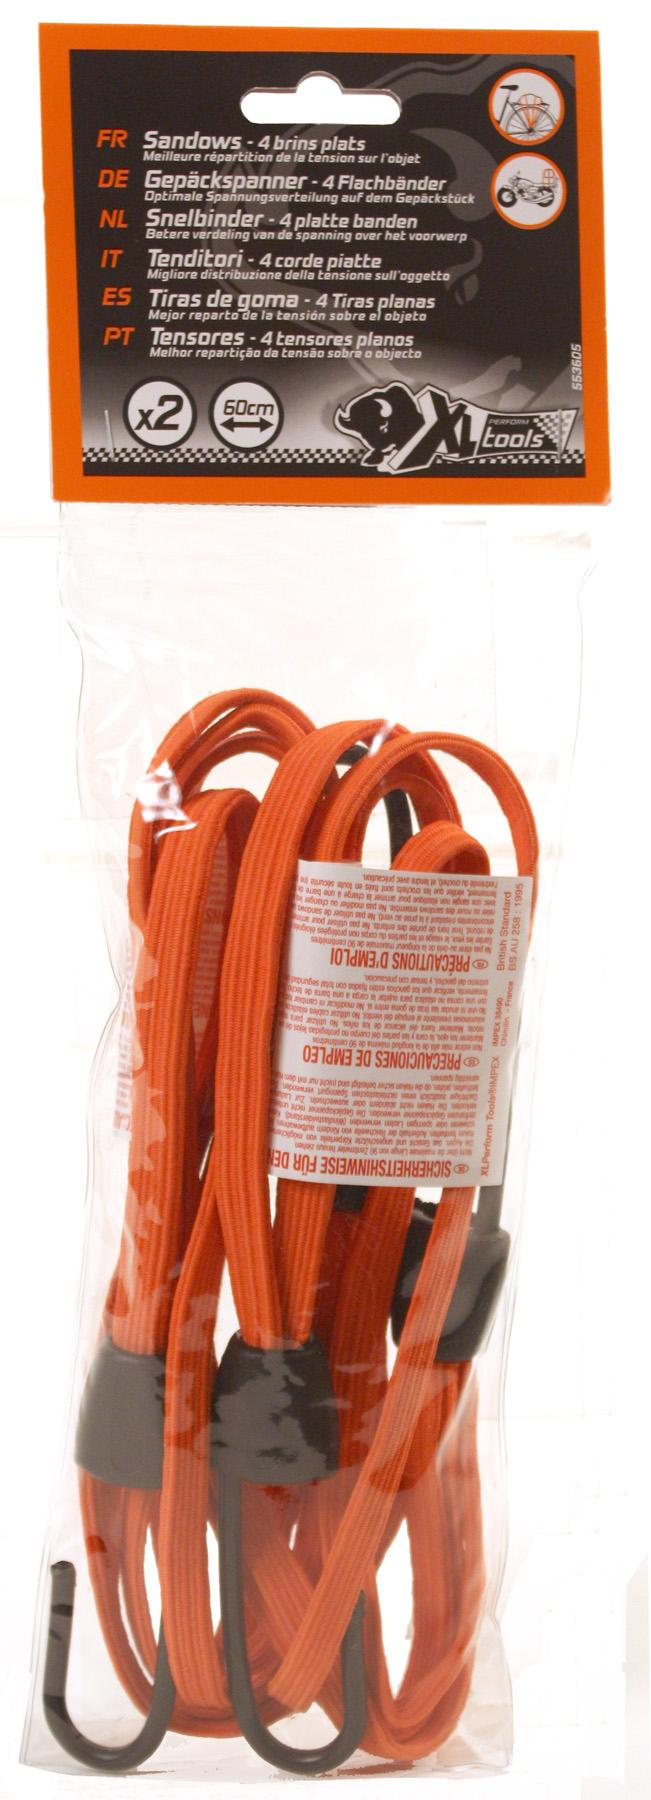 Bungee cords XL 553605 expert knowledge